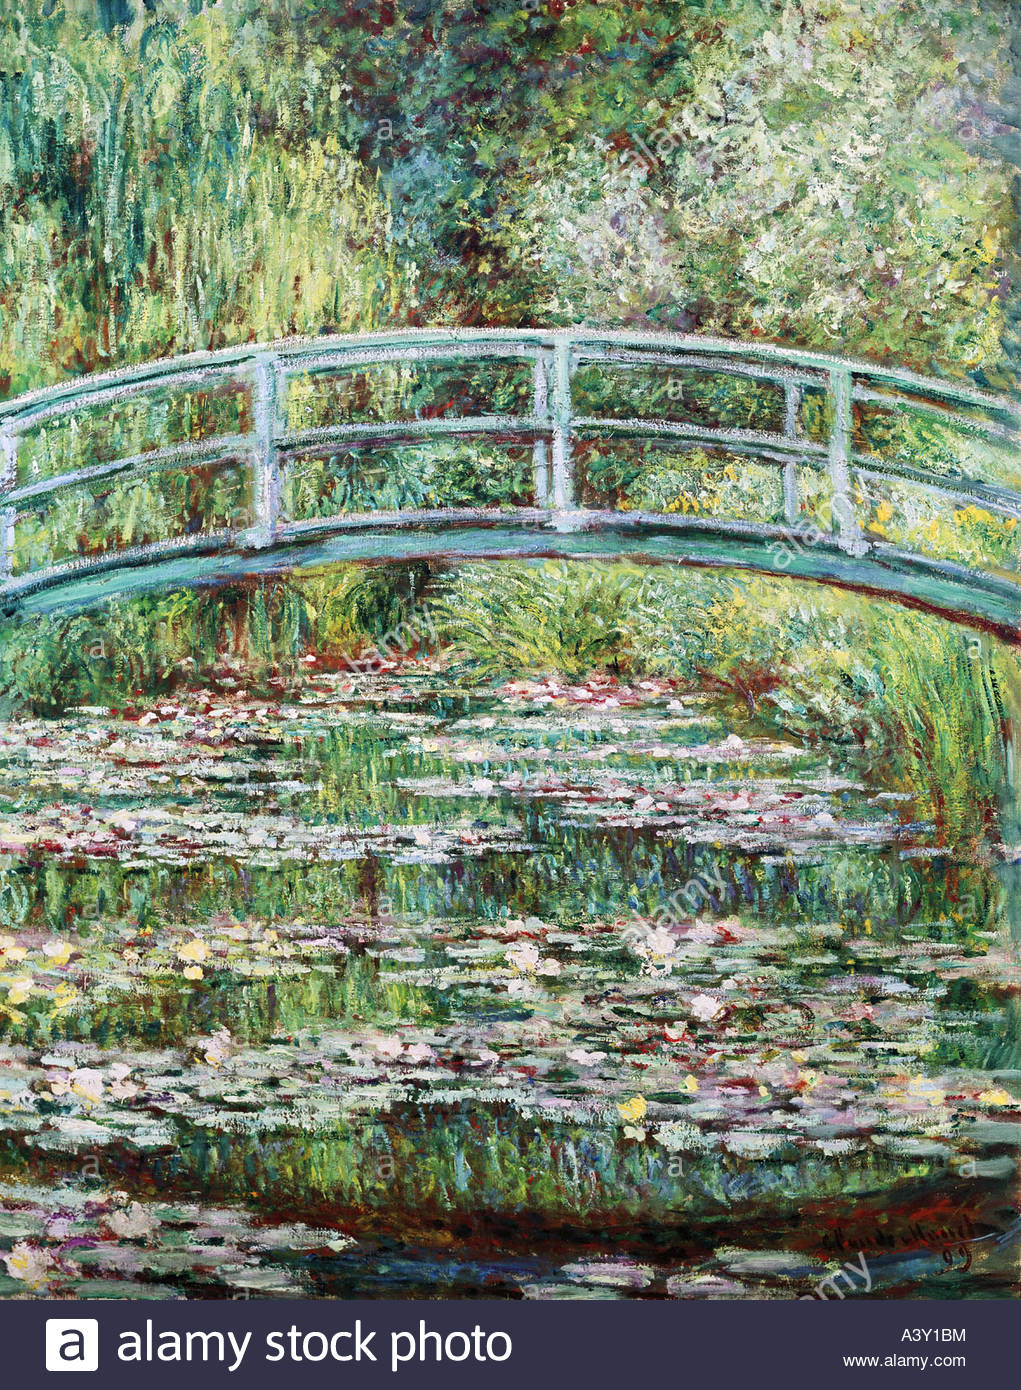 """fine arts, Monet, Claude, (1840 - 1926), painting, ""Pont Japonais a Giverny"", (""Japanese bridge at Giverny""), 1899, Stock Photo"